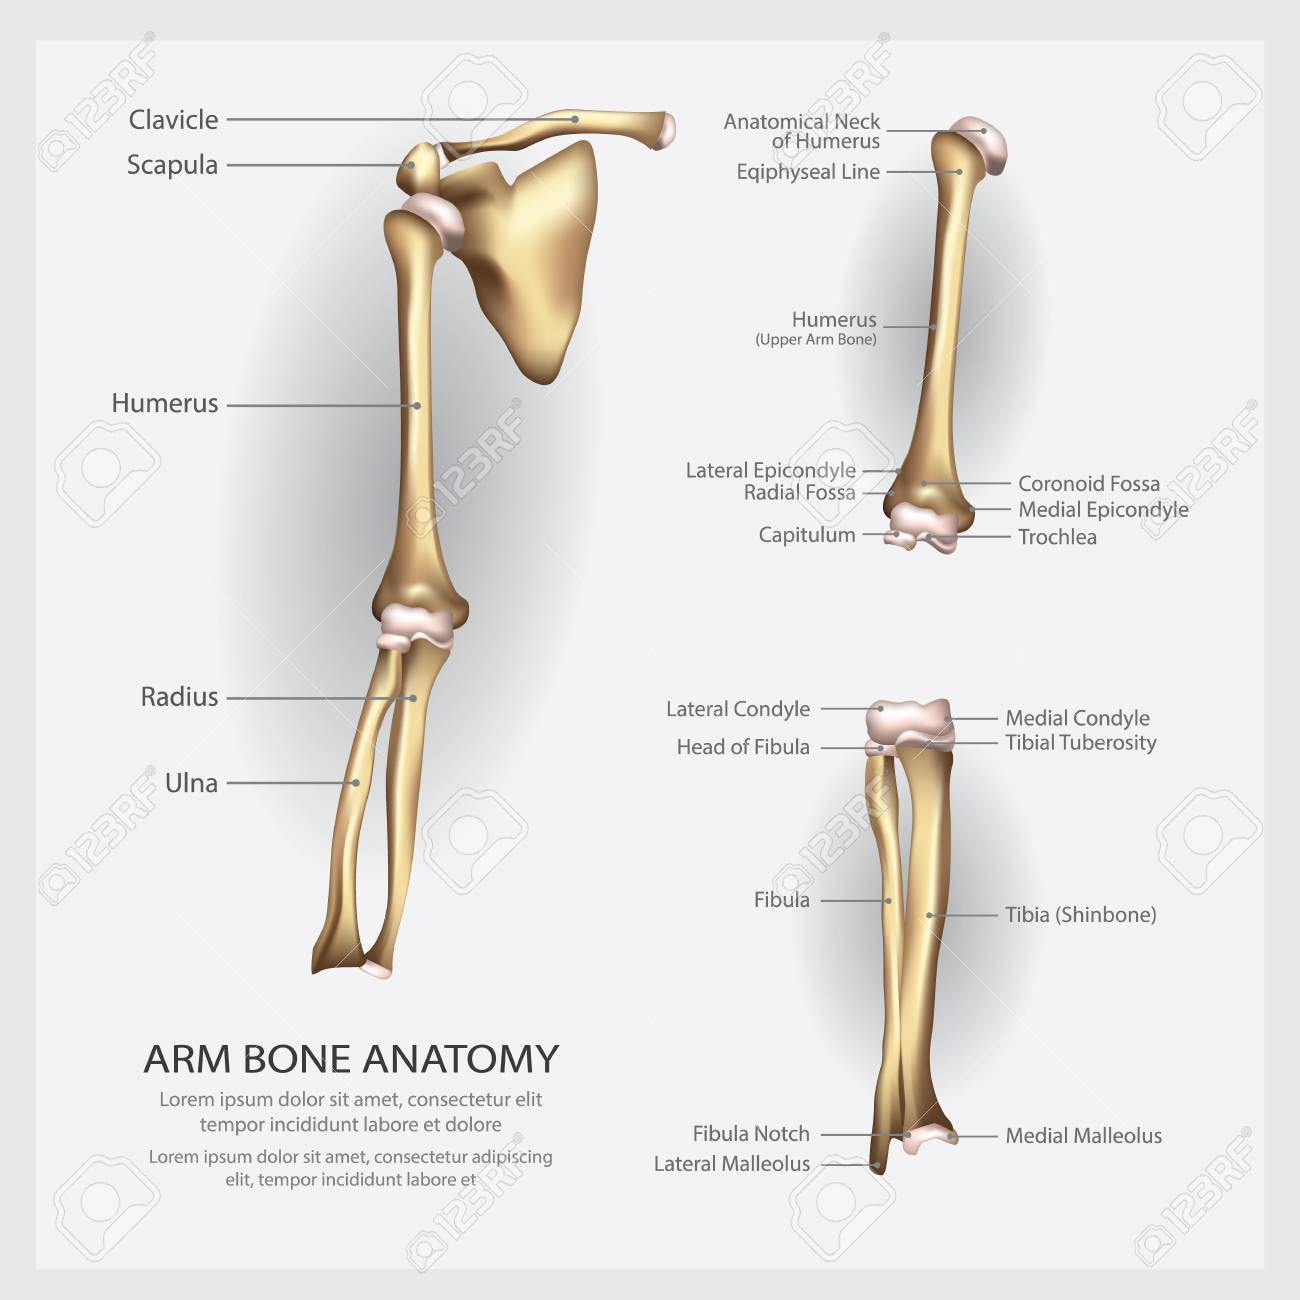 Arm Bone Anatomy With Detail Vector Illustration Royalty Free